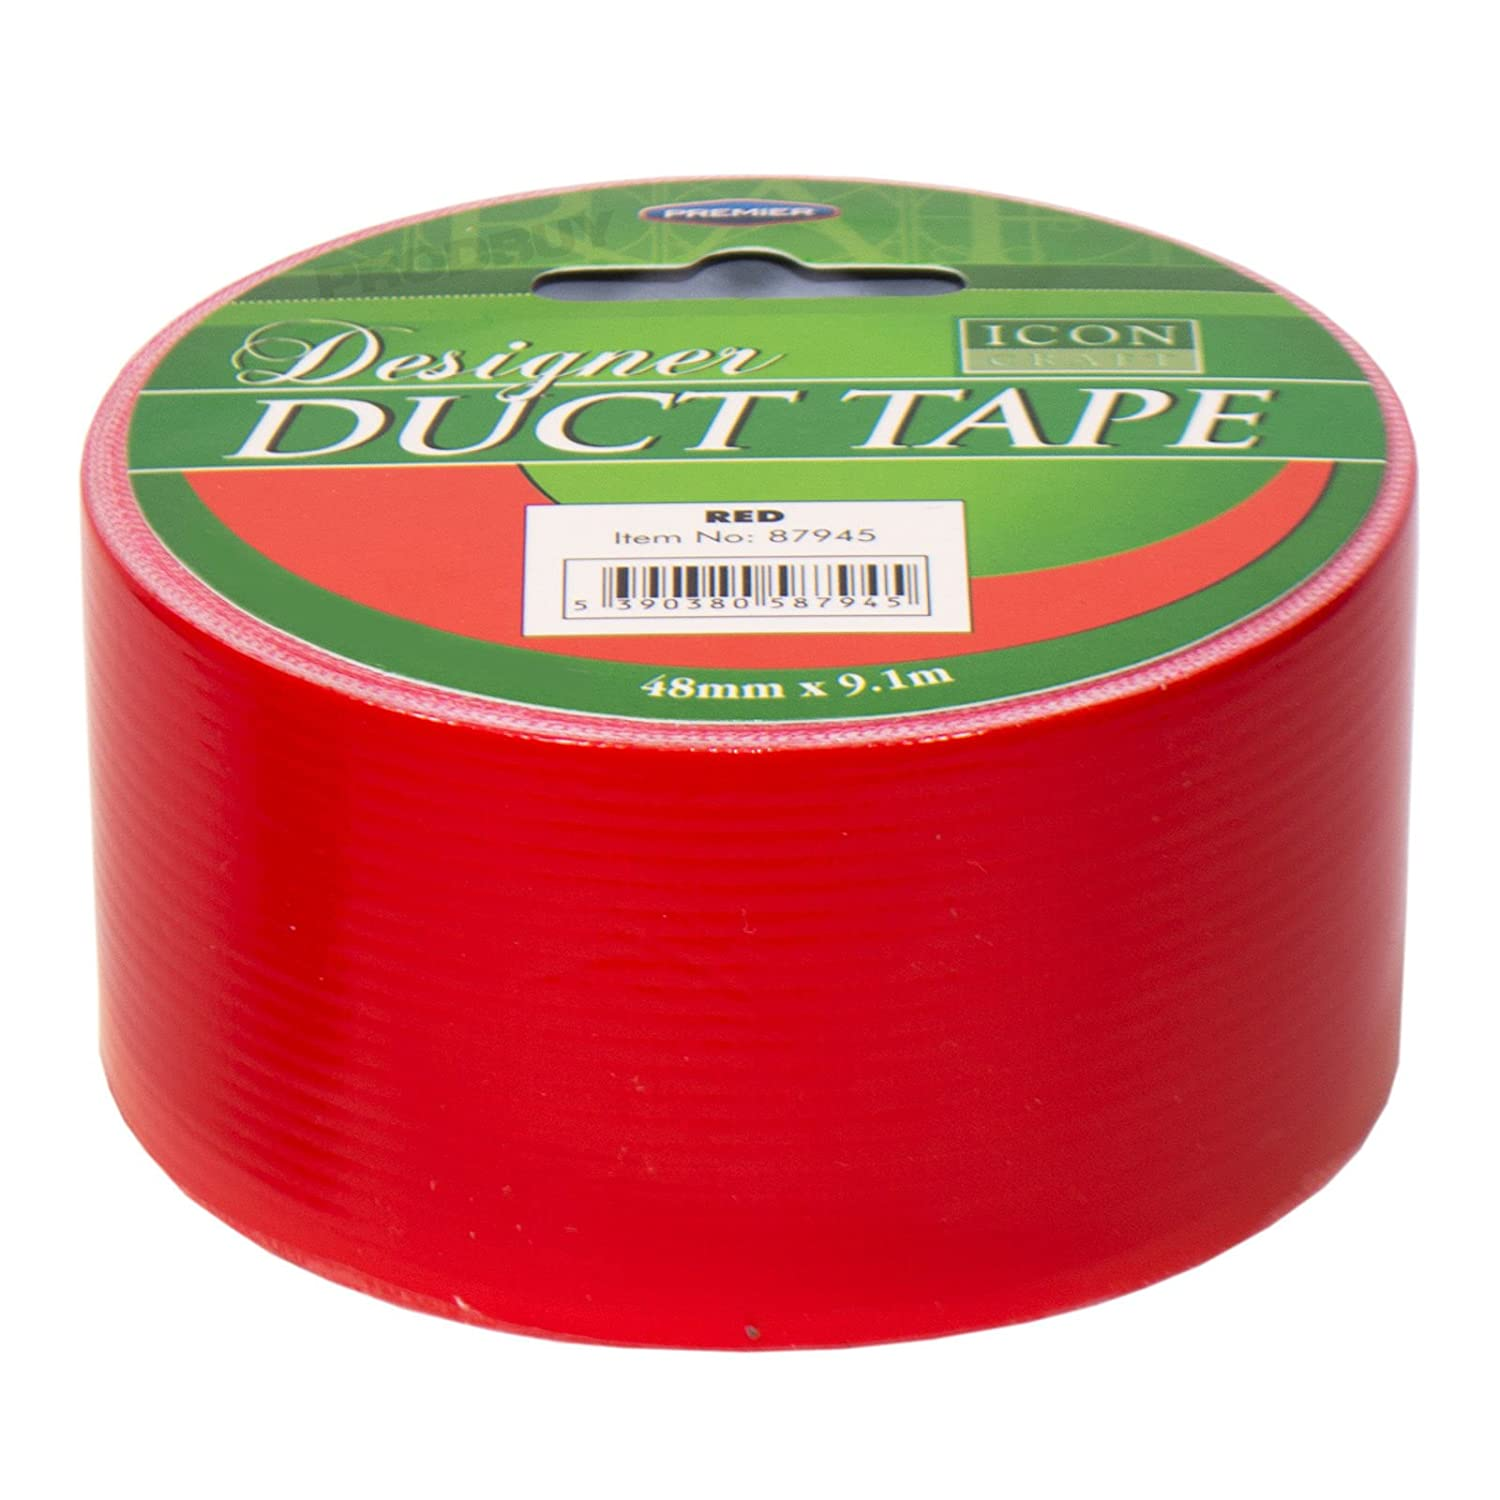 Single Roll of Duct Tape 48mm x 9.1m Bright Colour Duck Gaffa Gaffer Craft Tape (Pink) Prodbuy Limited